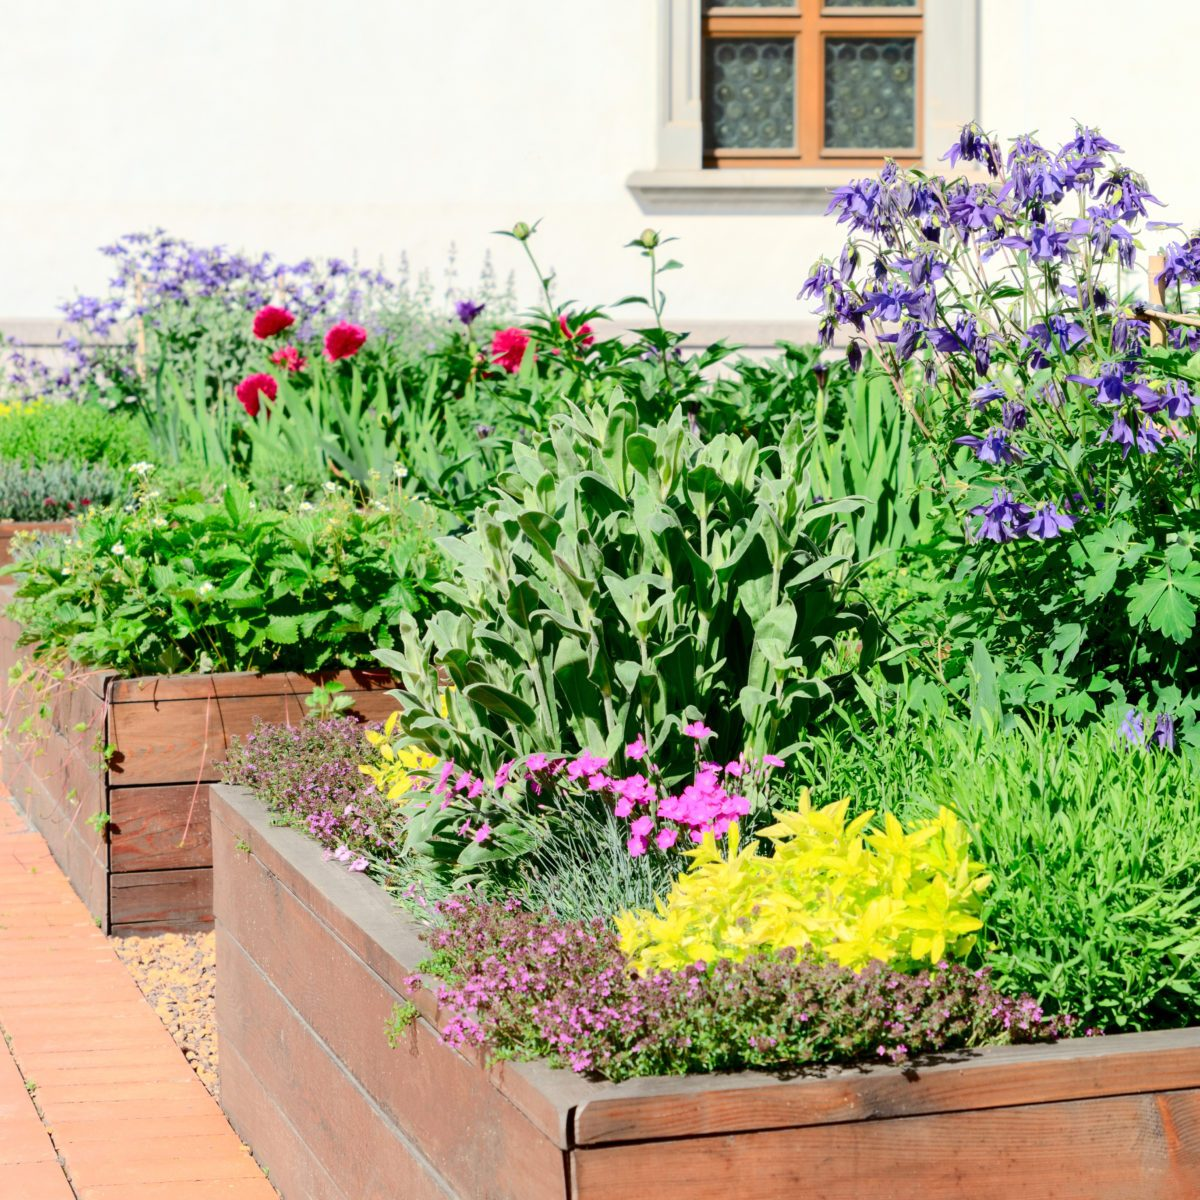 Raised beds in an urban garden growing plants flowers, herbs spices and berries; Shutterstock ID 1407108191; Job (TFH, TOH, RD, BNB, CWM, CM): TOH Edible Landscaping